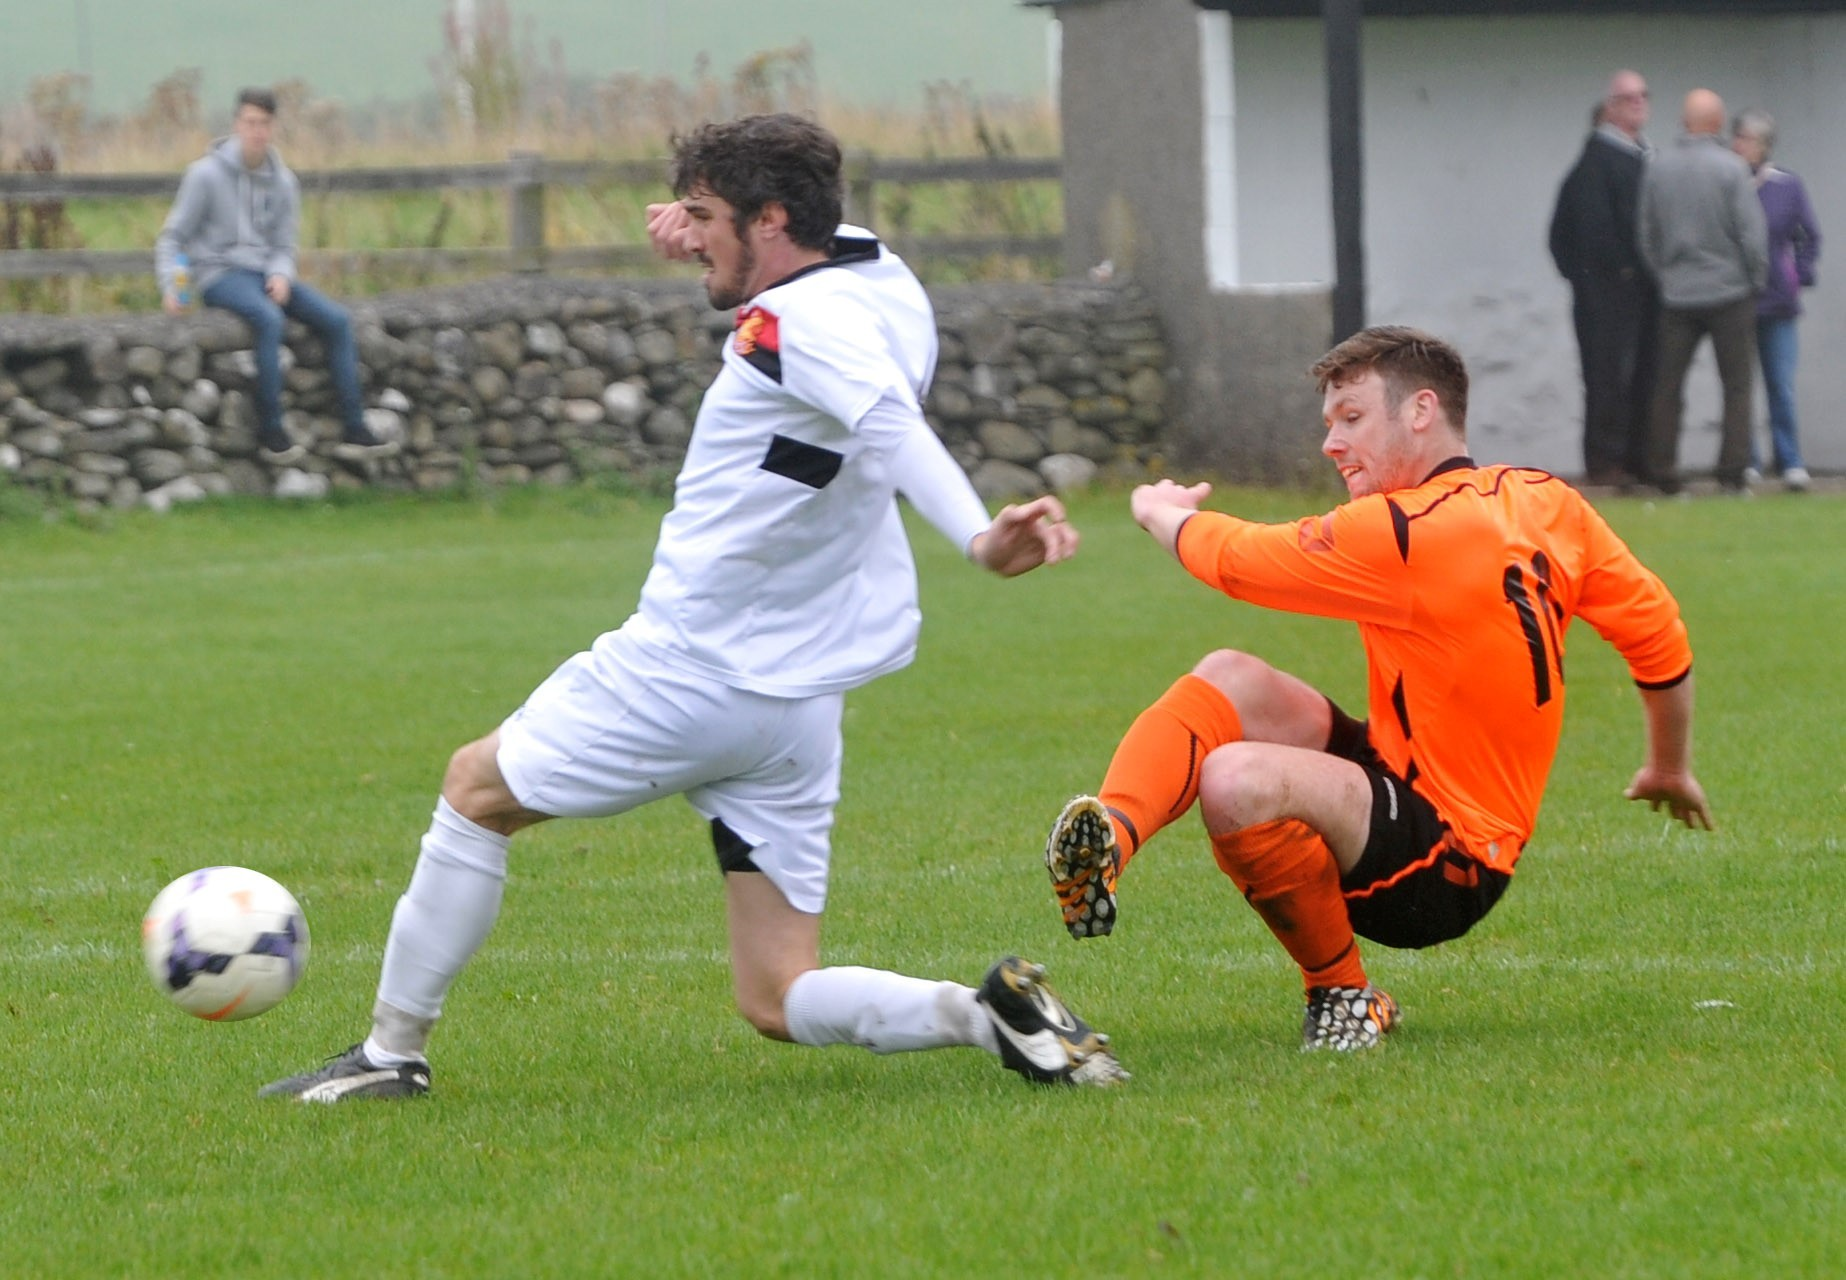 Mark Loughlin (right) scored for Settle United in their vital win at Silsden Whitestar